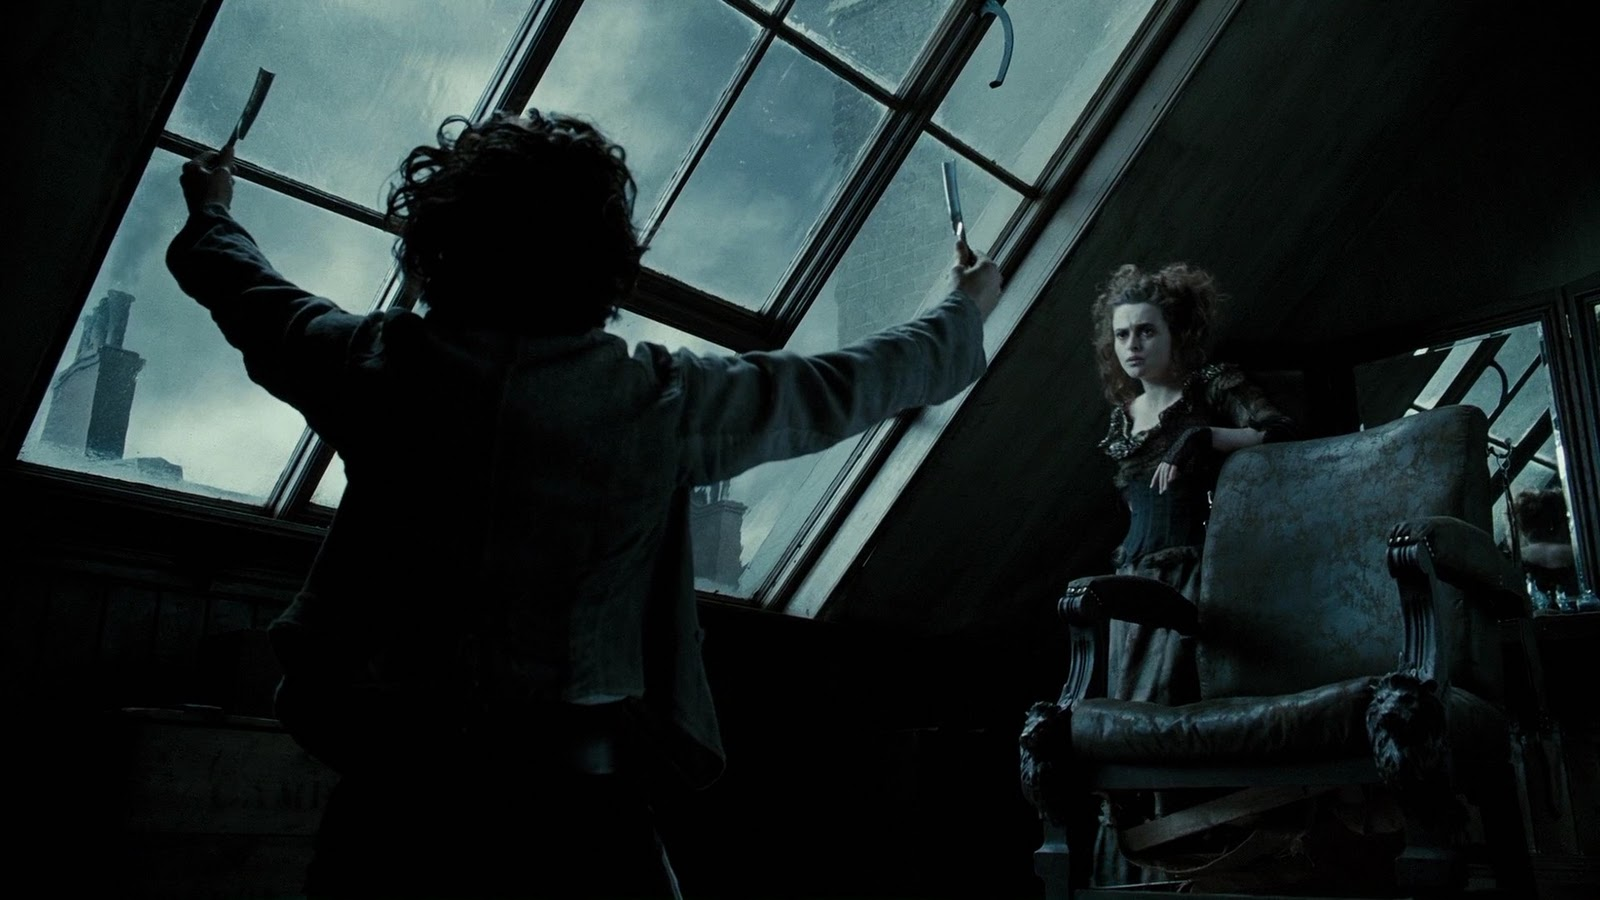 sweeney todd, tim burton, sweeney, demon barber, fleet street, goth musical,